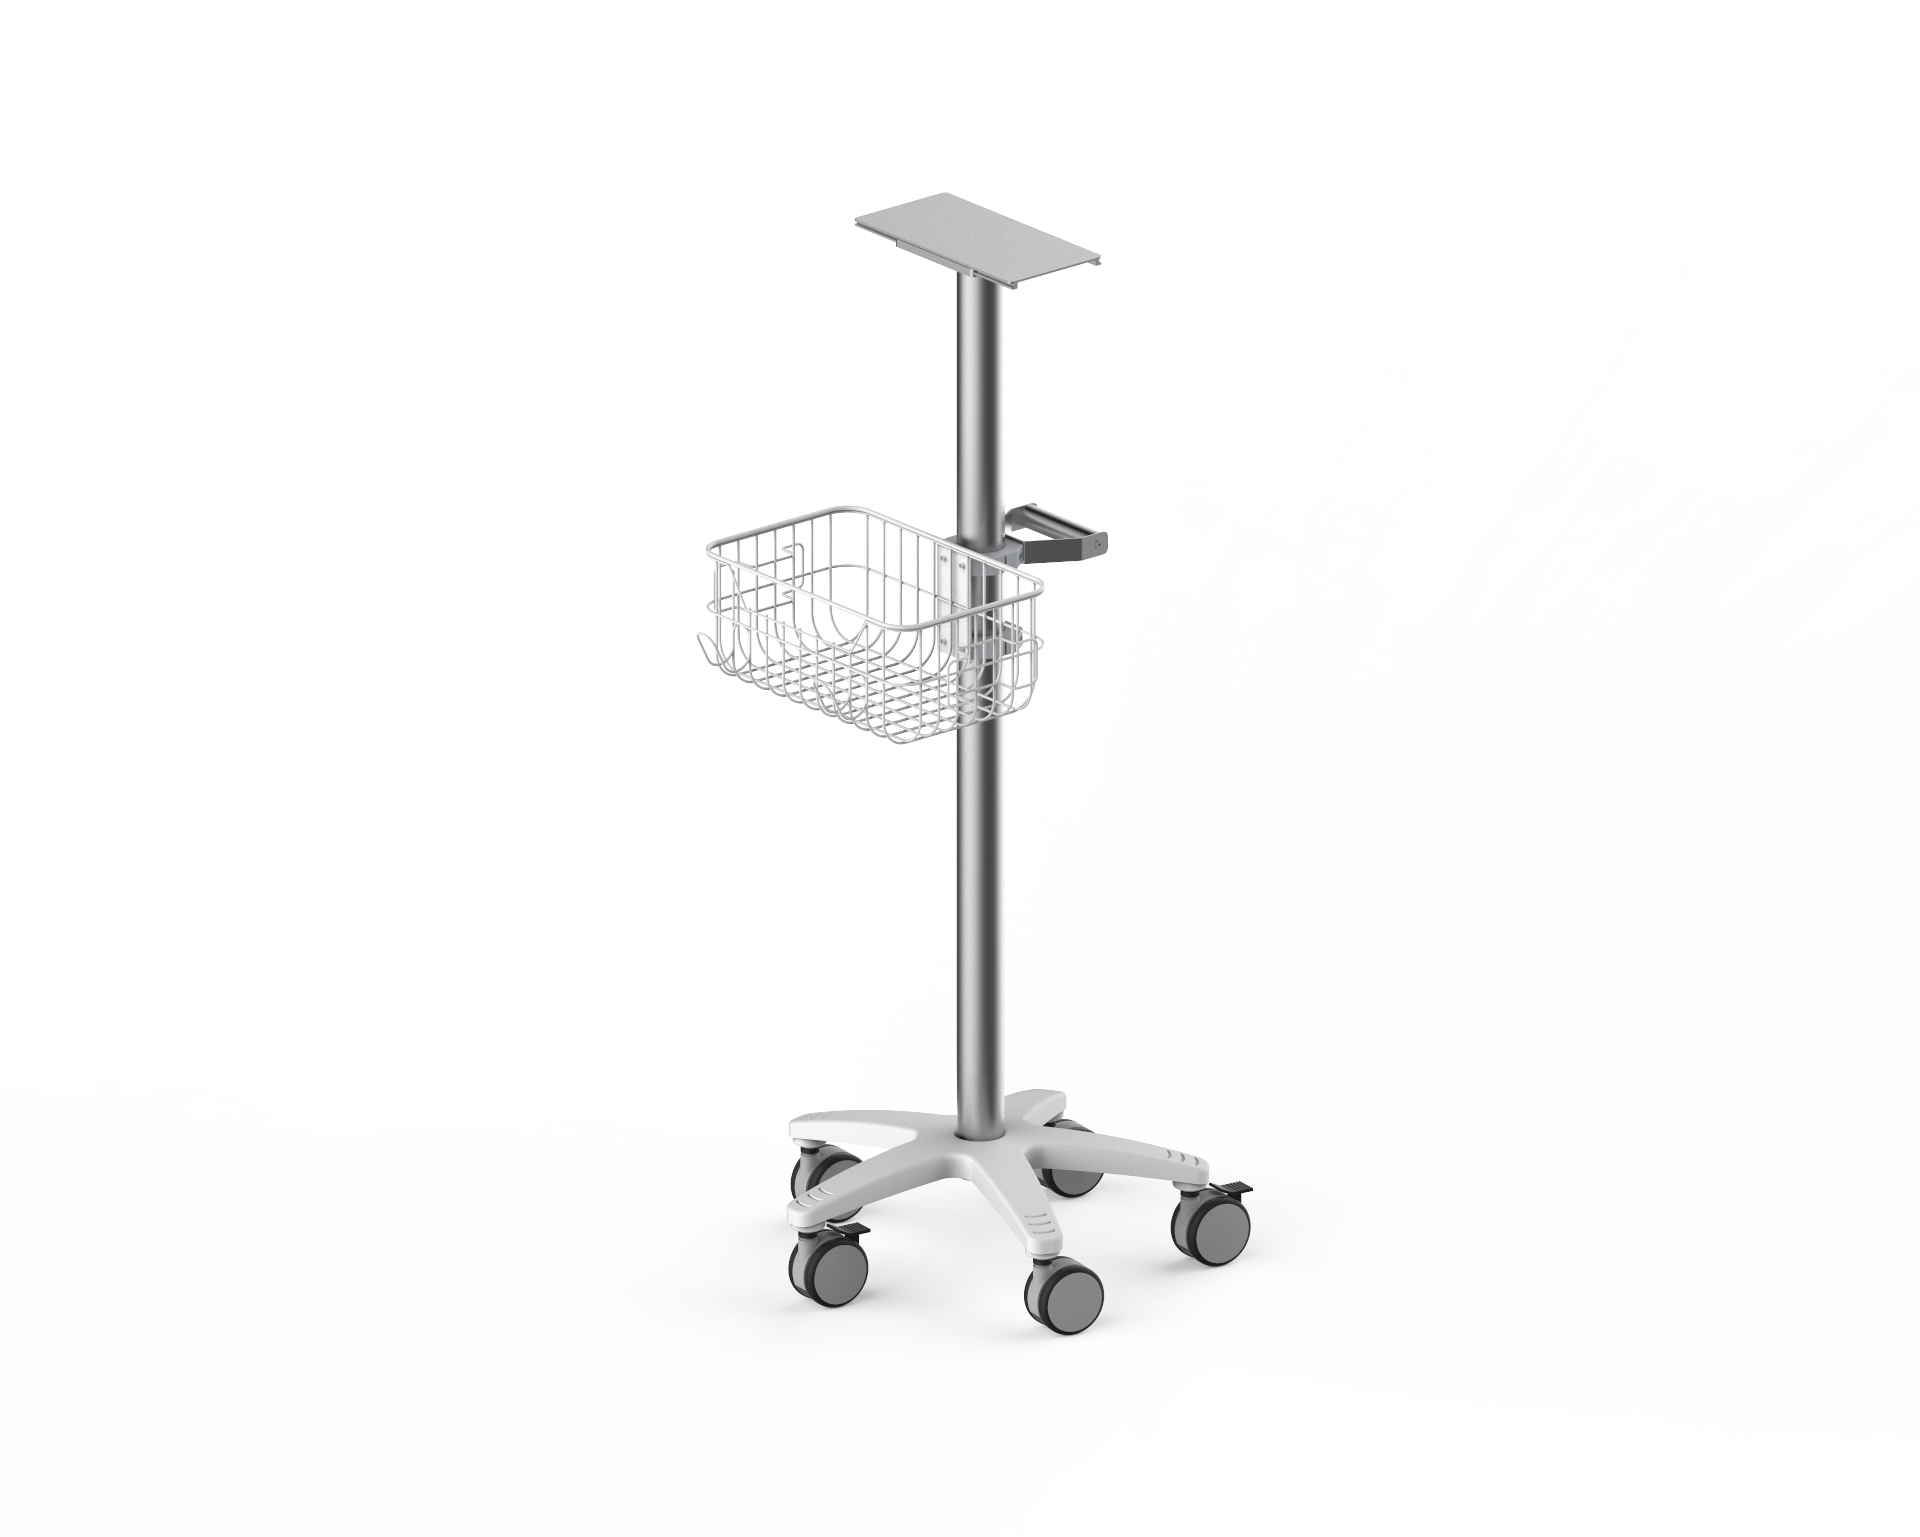 Mobile Medizinische Trolley Medical Trolley Laptop Patienten Monitor Trolley Warenkorb